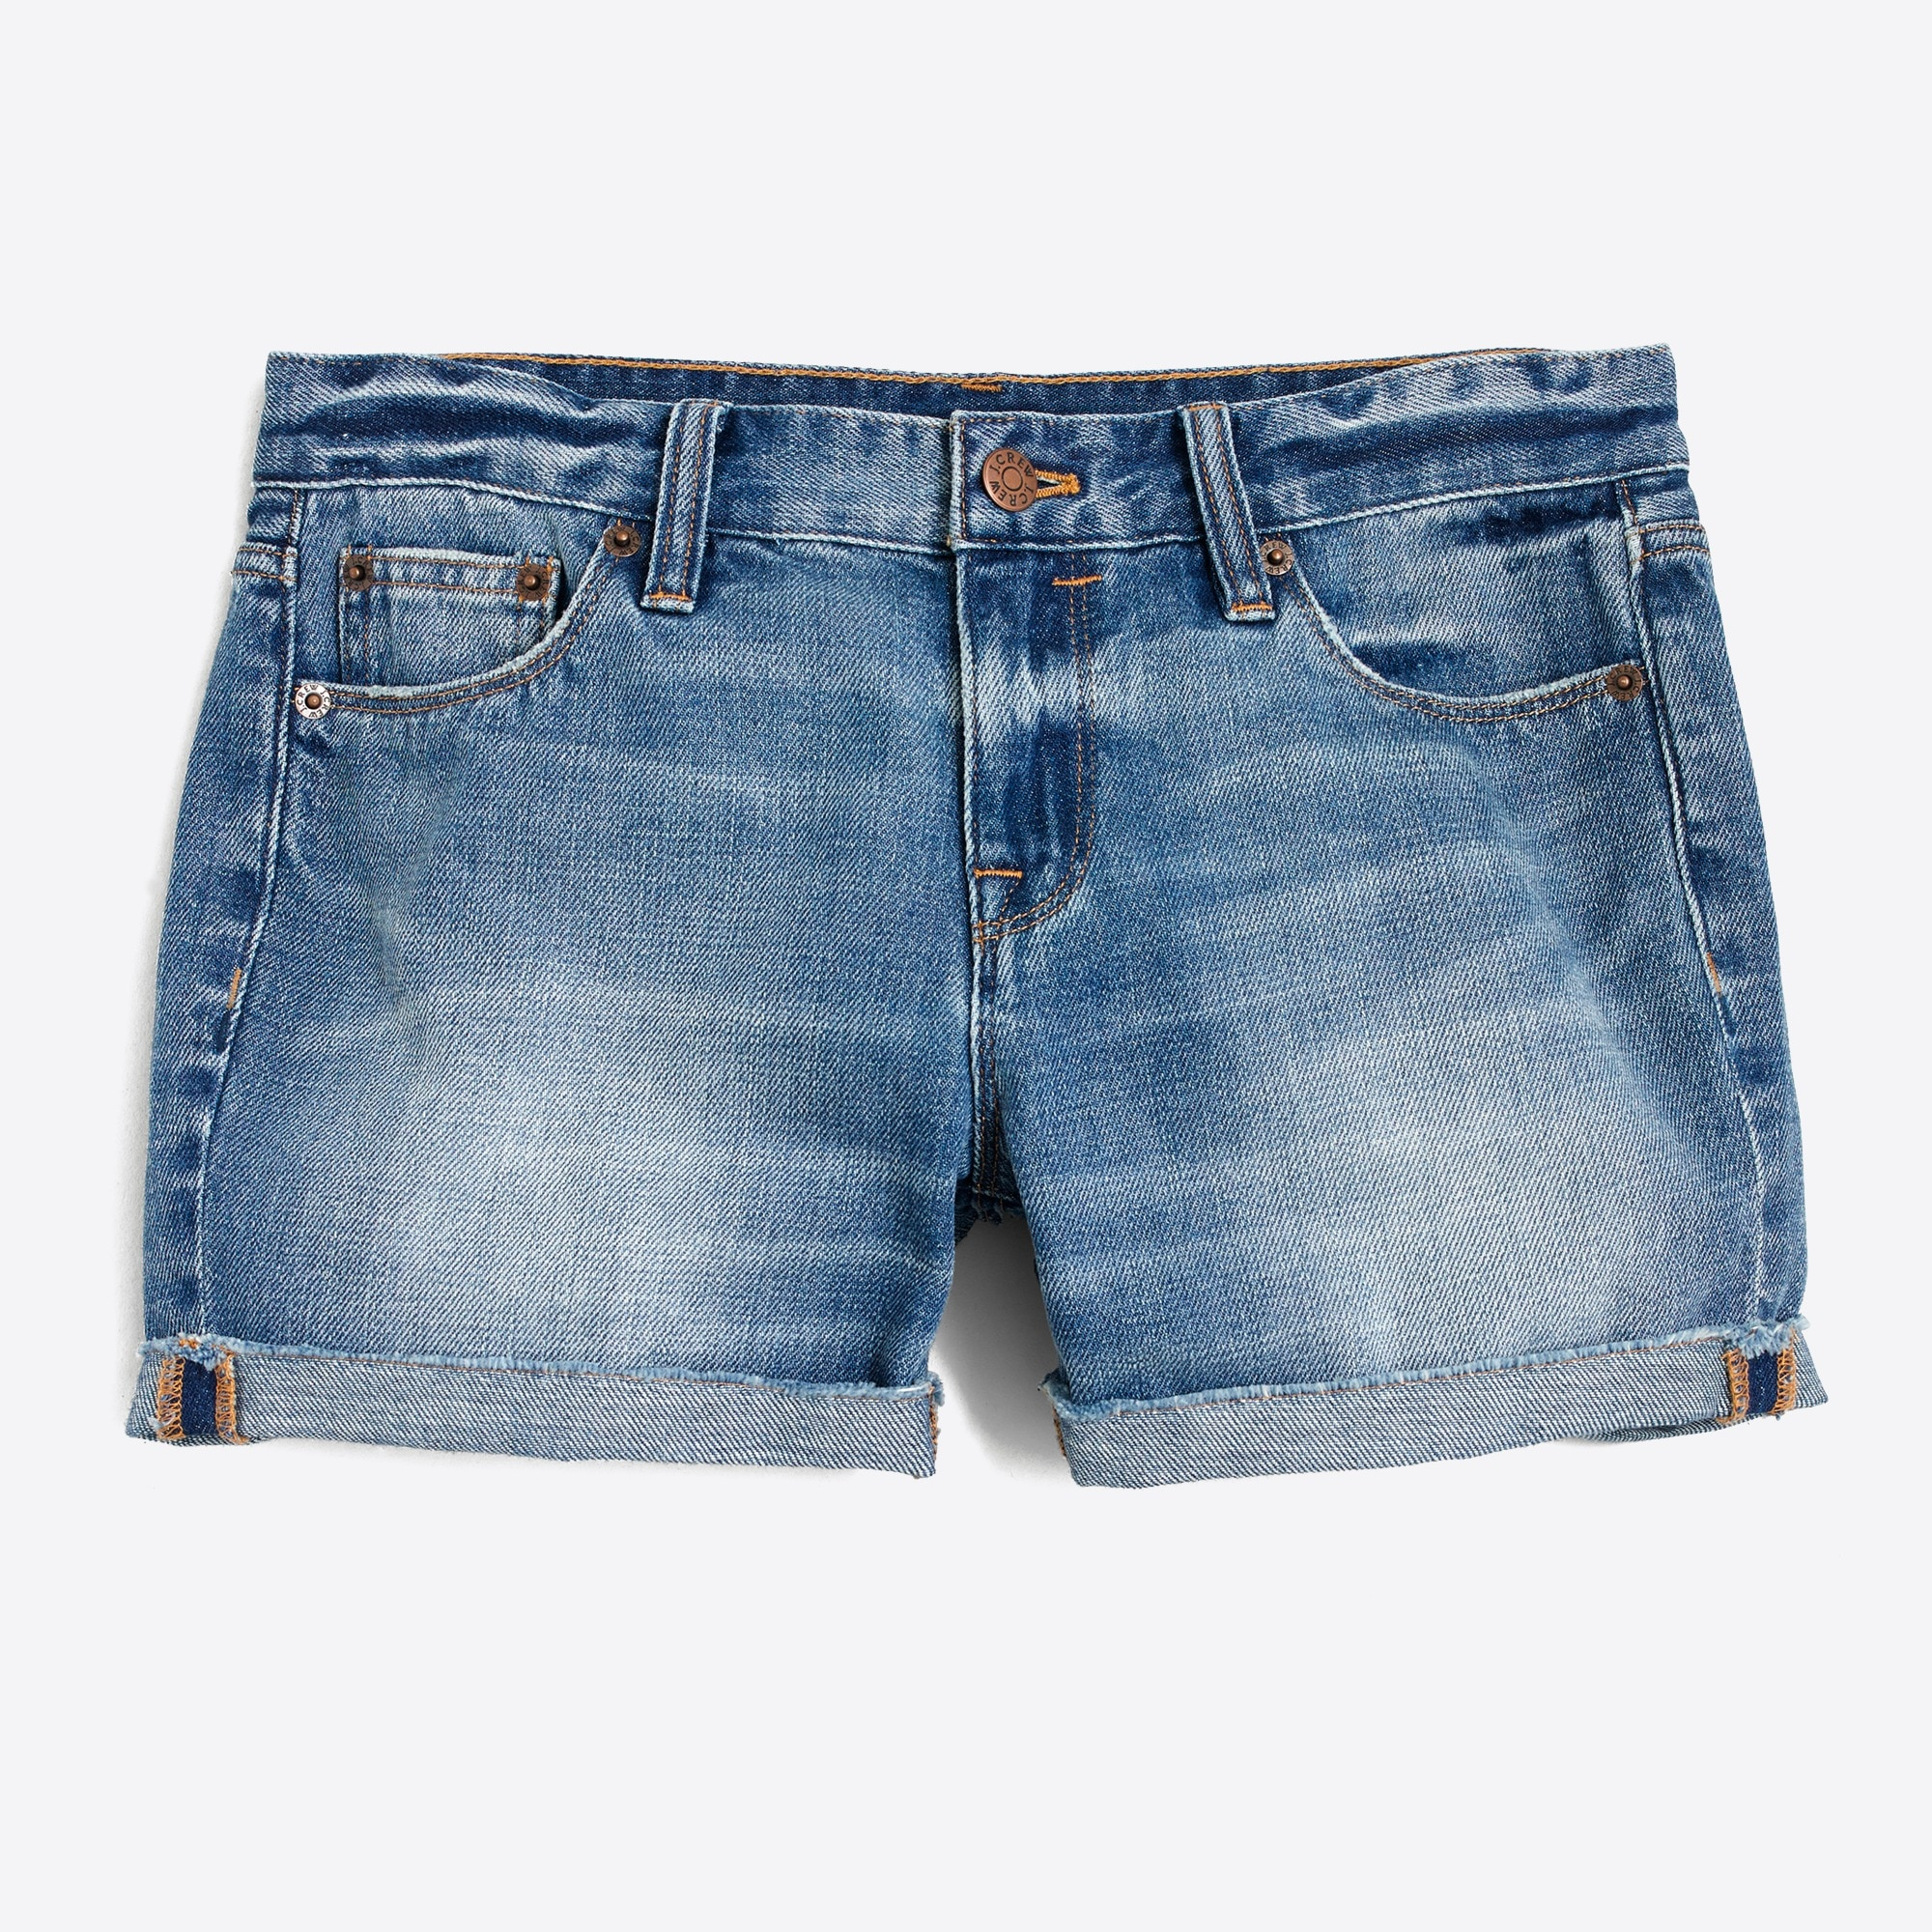 Image 2 for Denim short in Liza wash